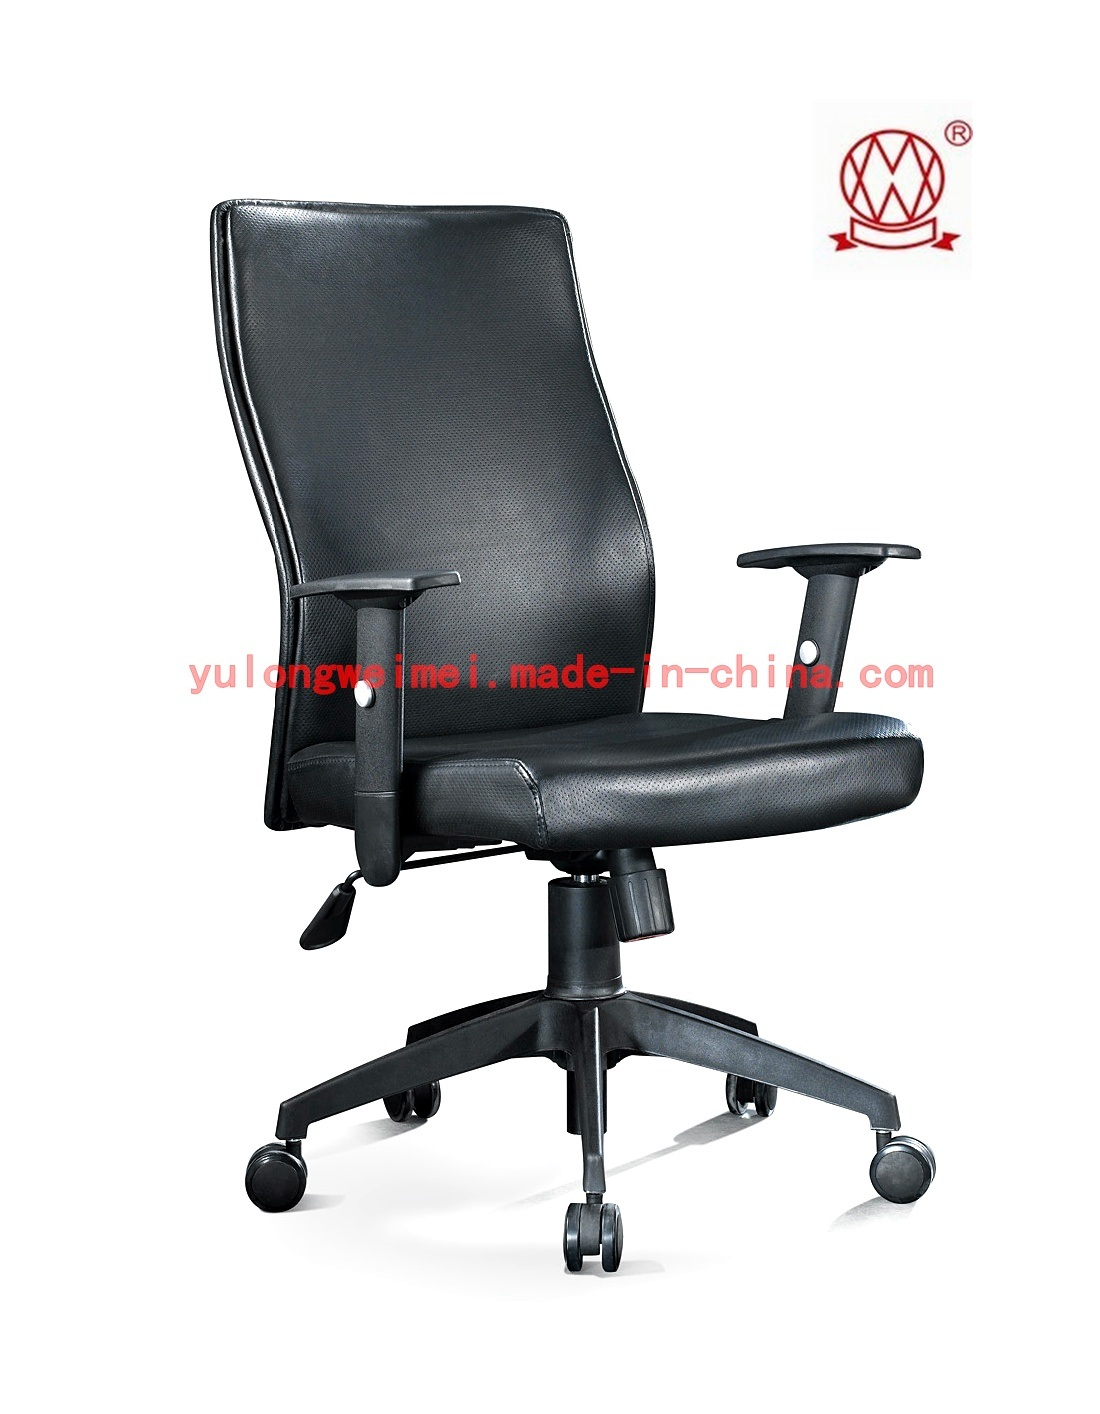 swivel chair mechanism suppliers red chairs sarajevo hot b 9225 china office furniture